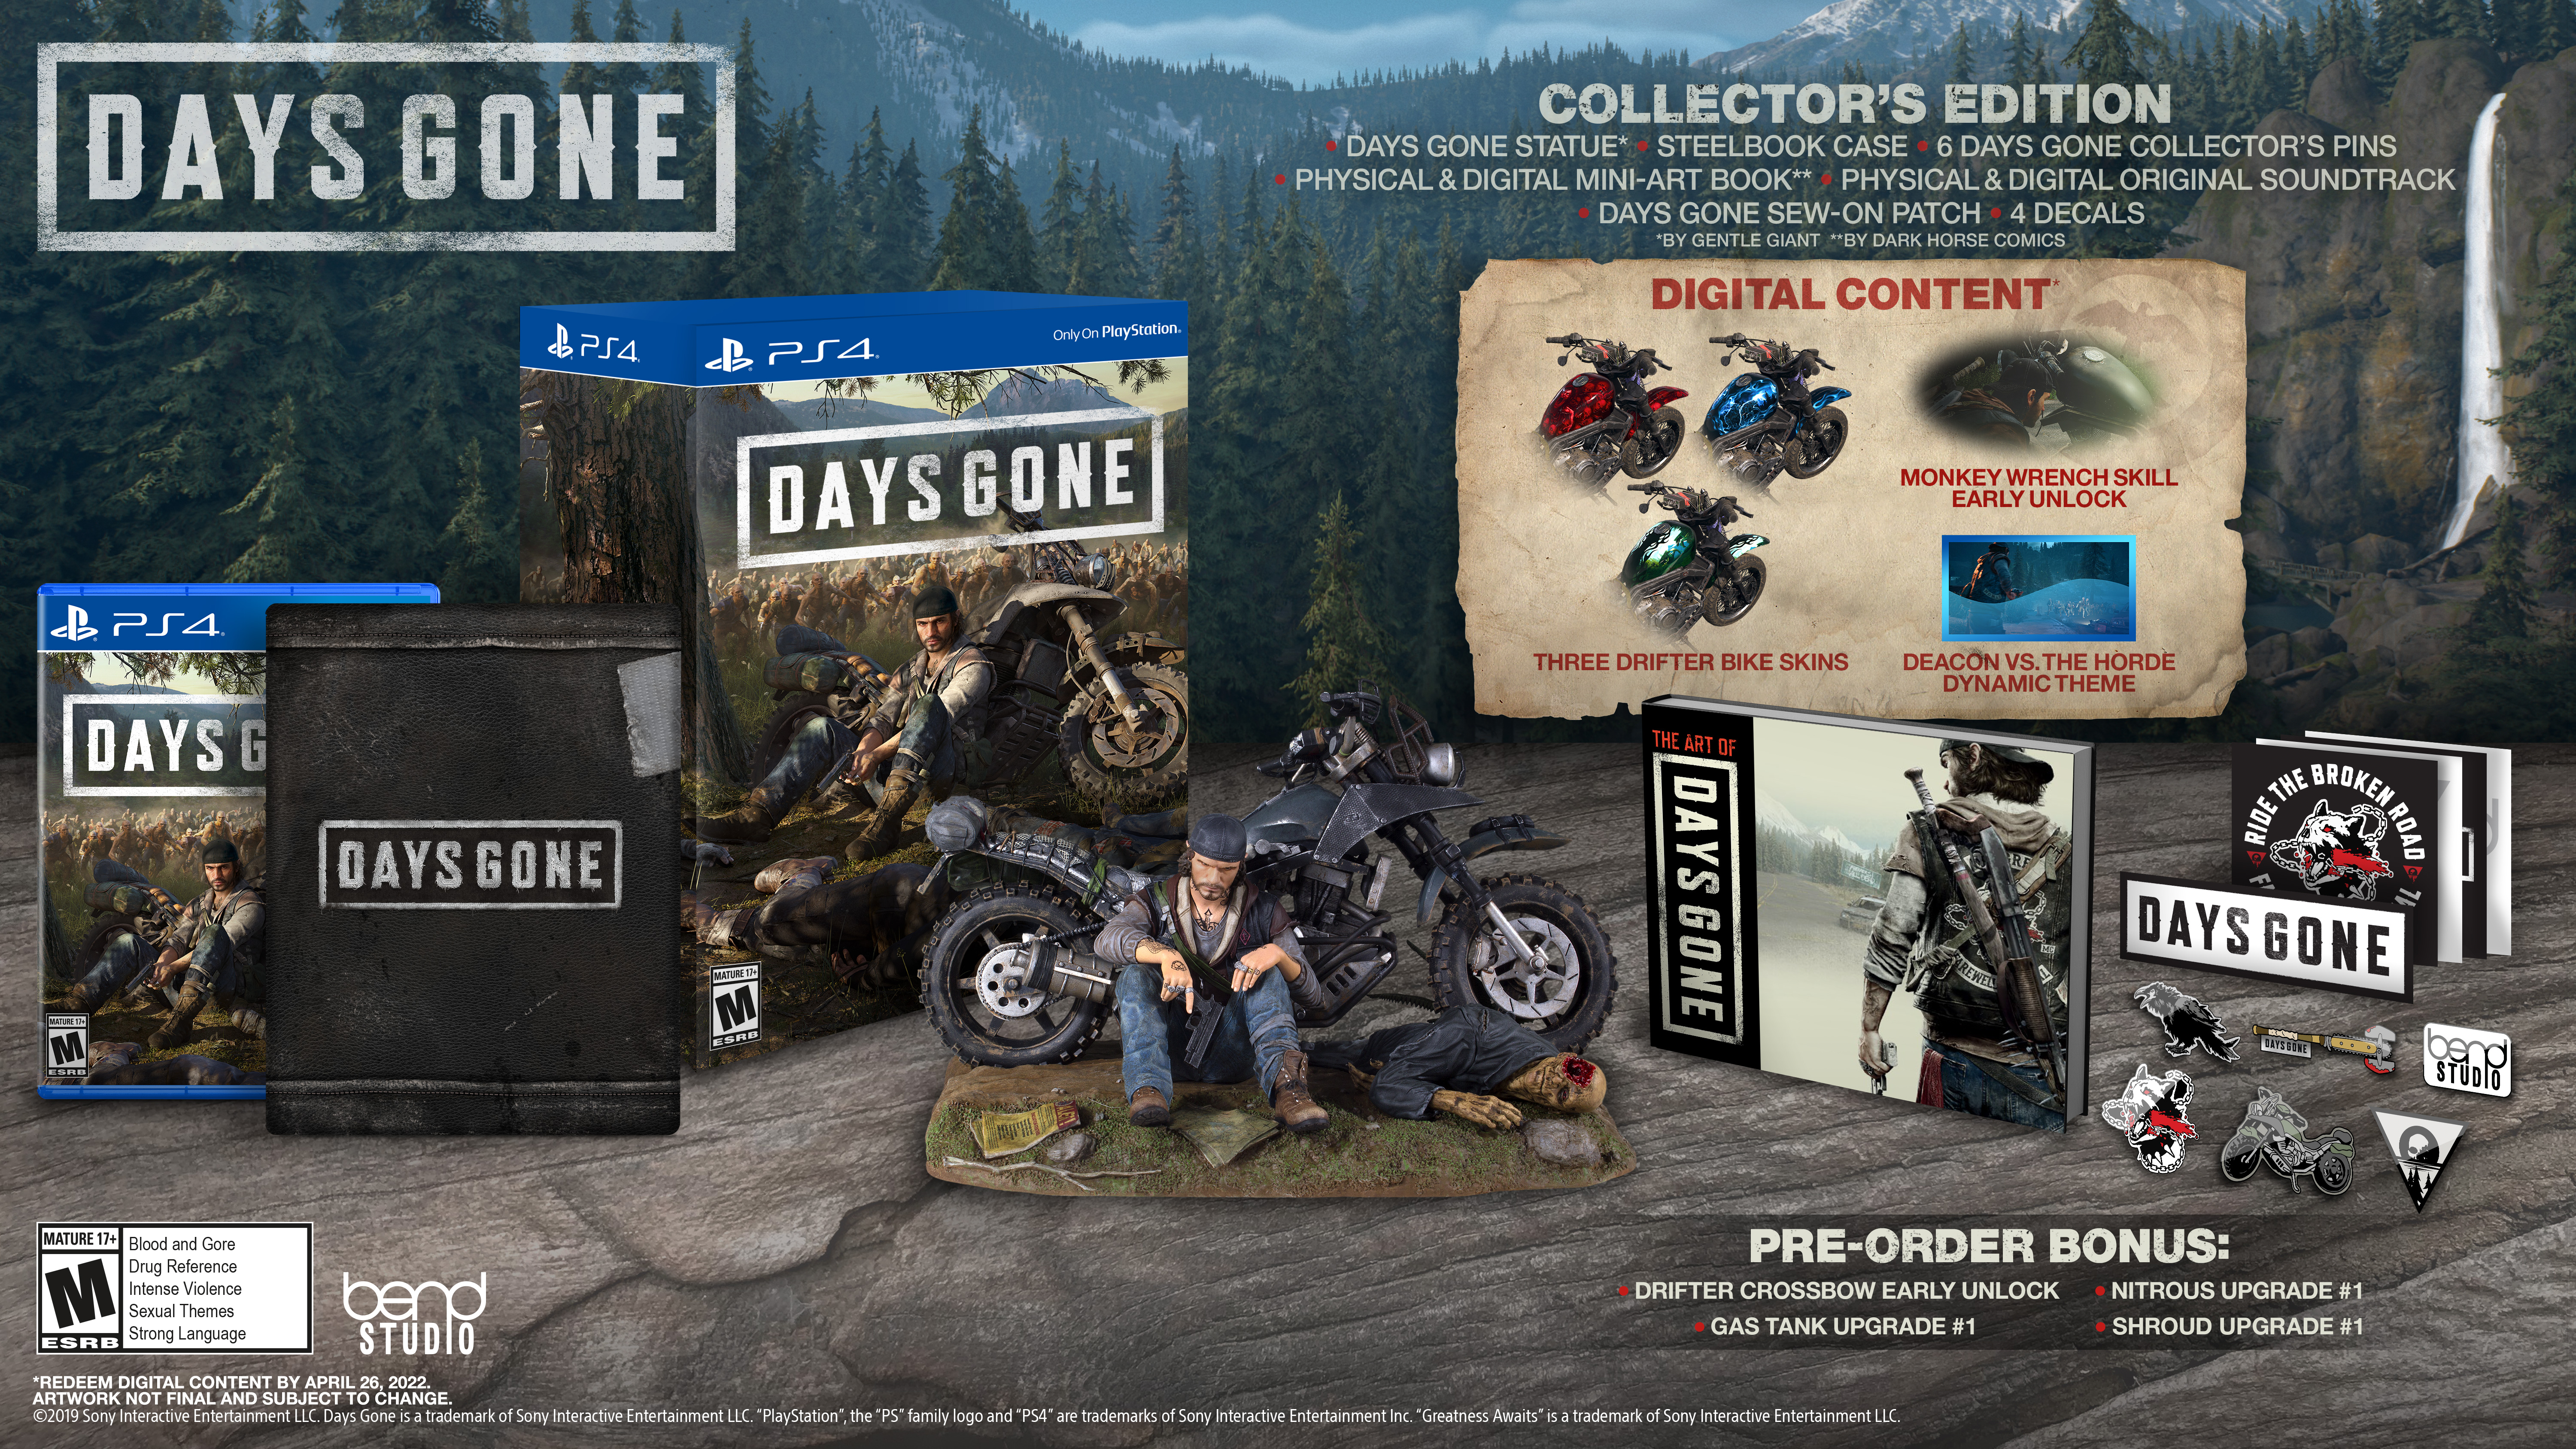 Collector's Edition - Days Gone